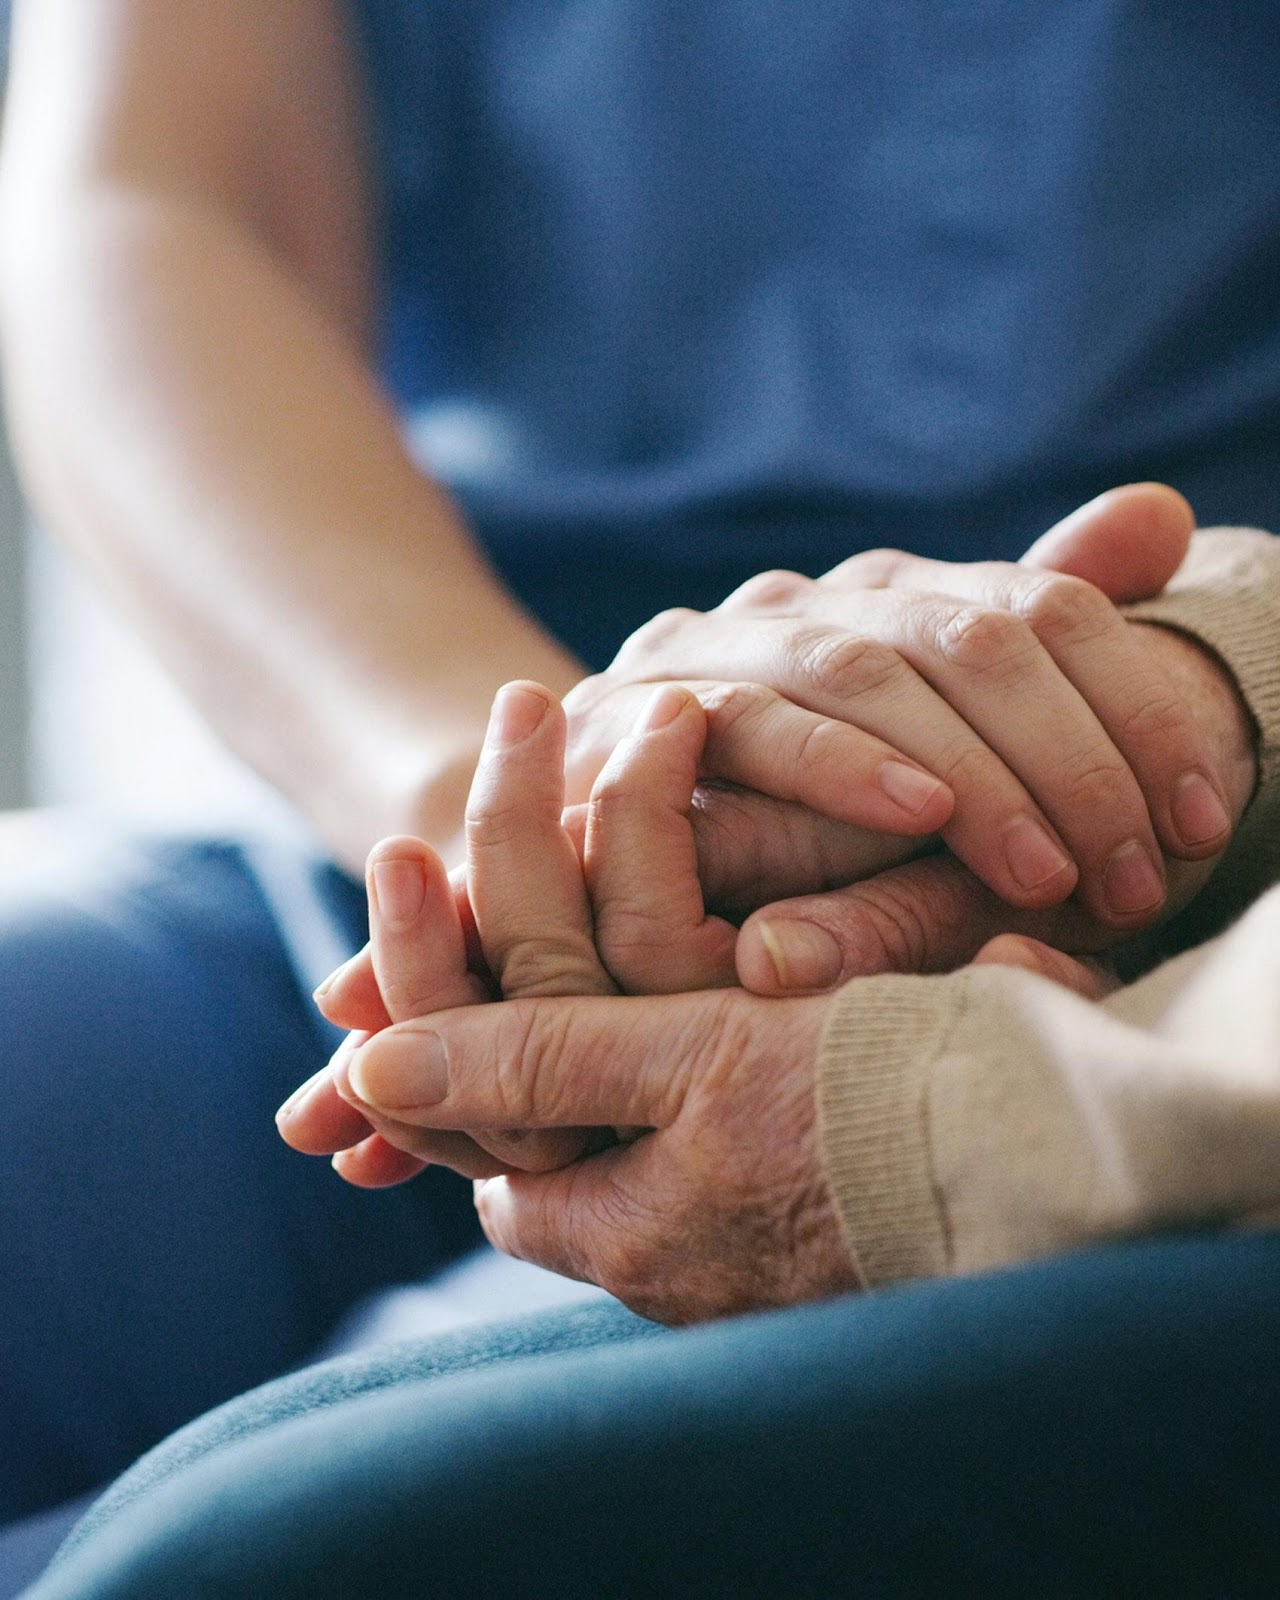 A senior woman holding hands with a nurse